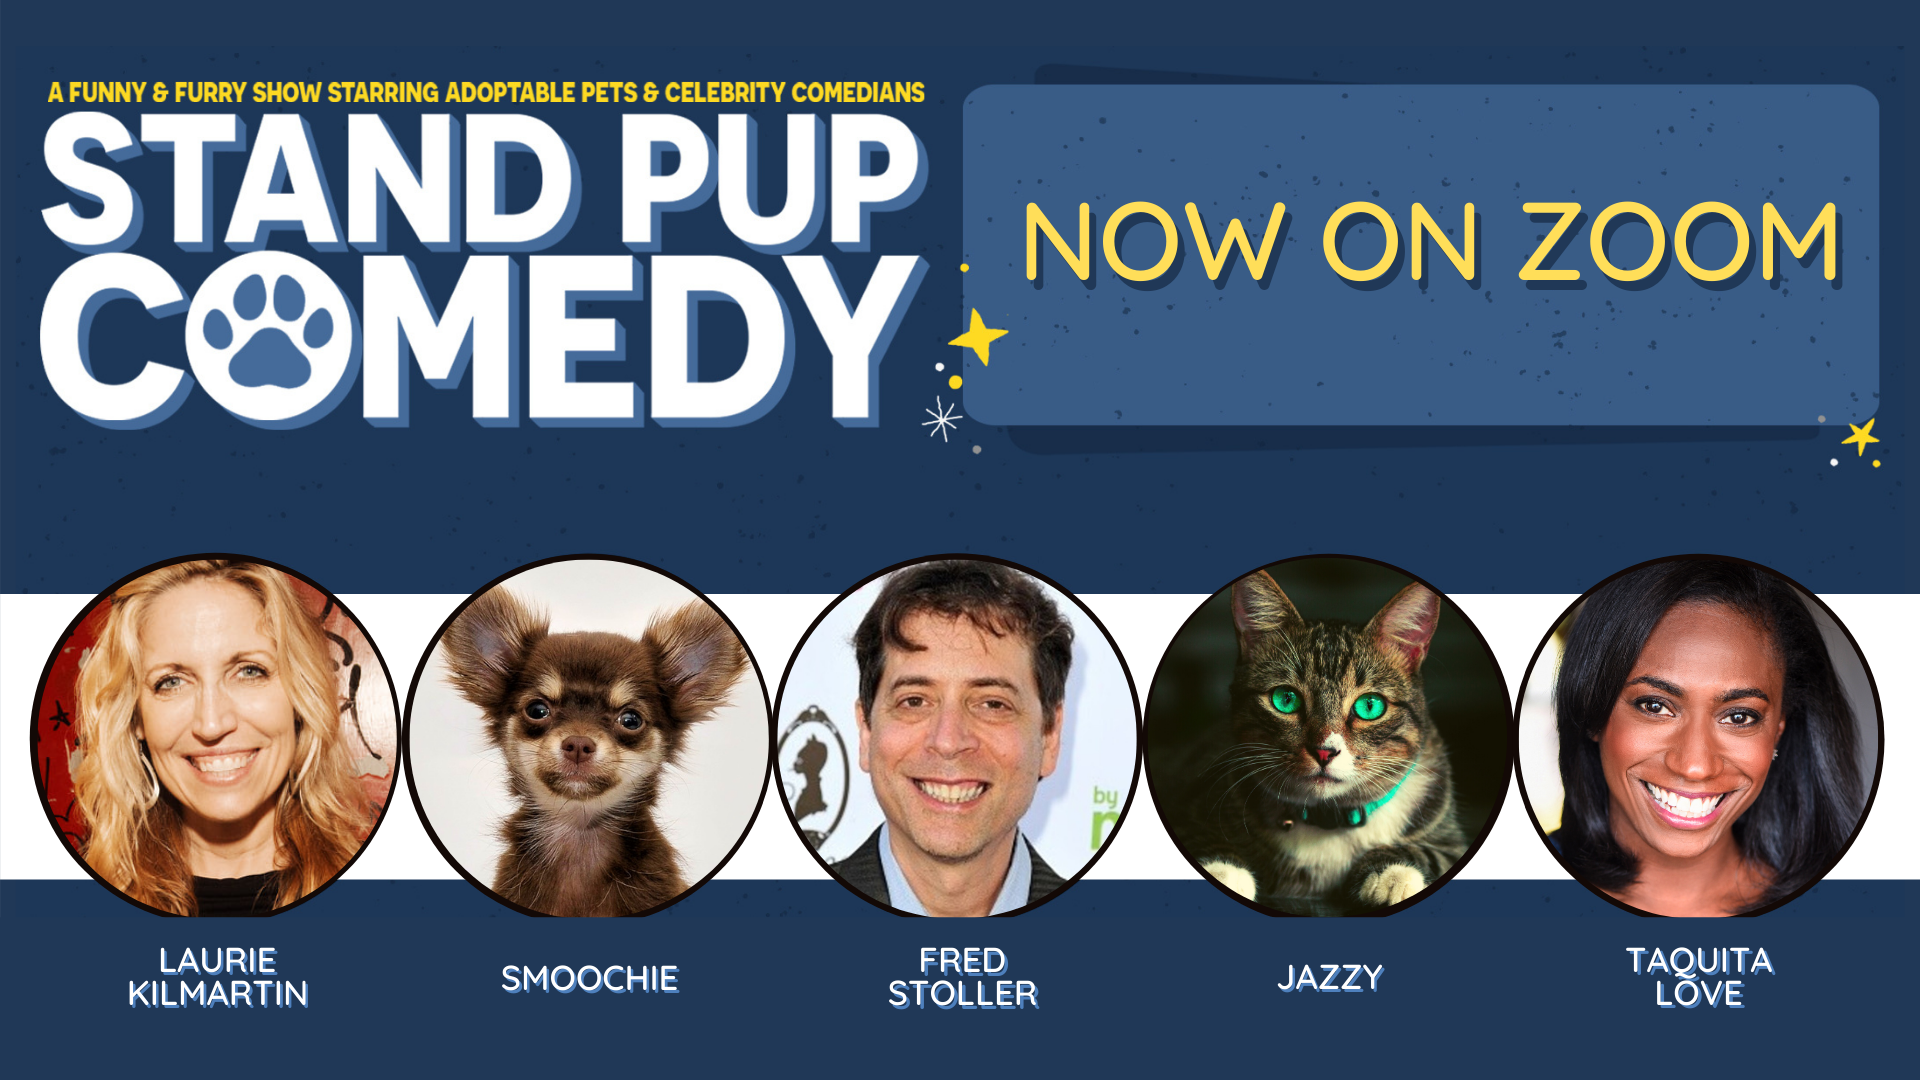 Dogs, Cats & Comedians - It's Stand Pup Comedy Online!